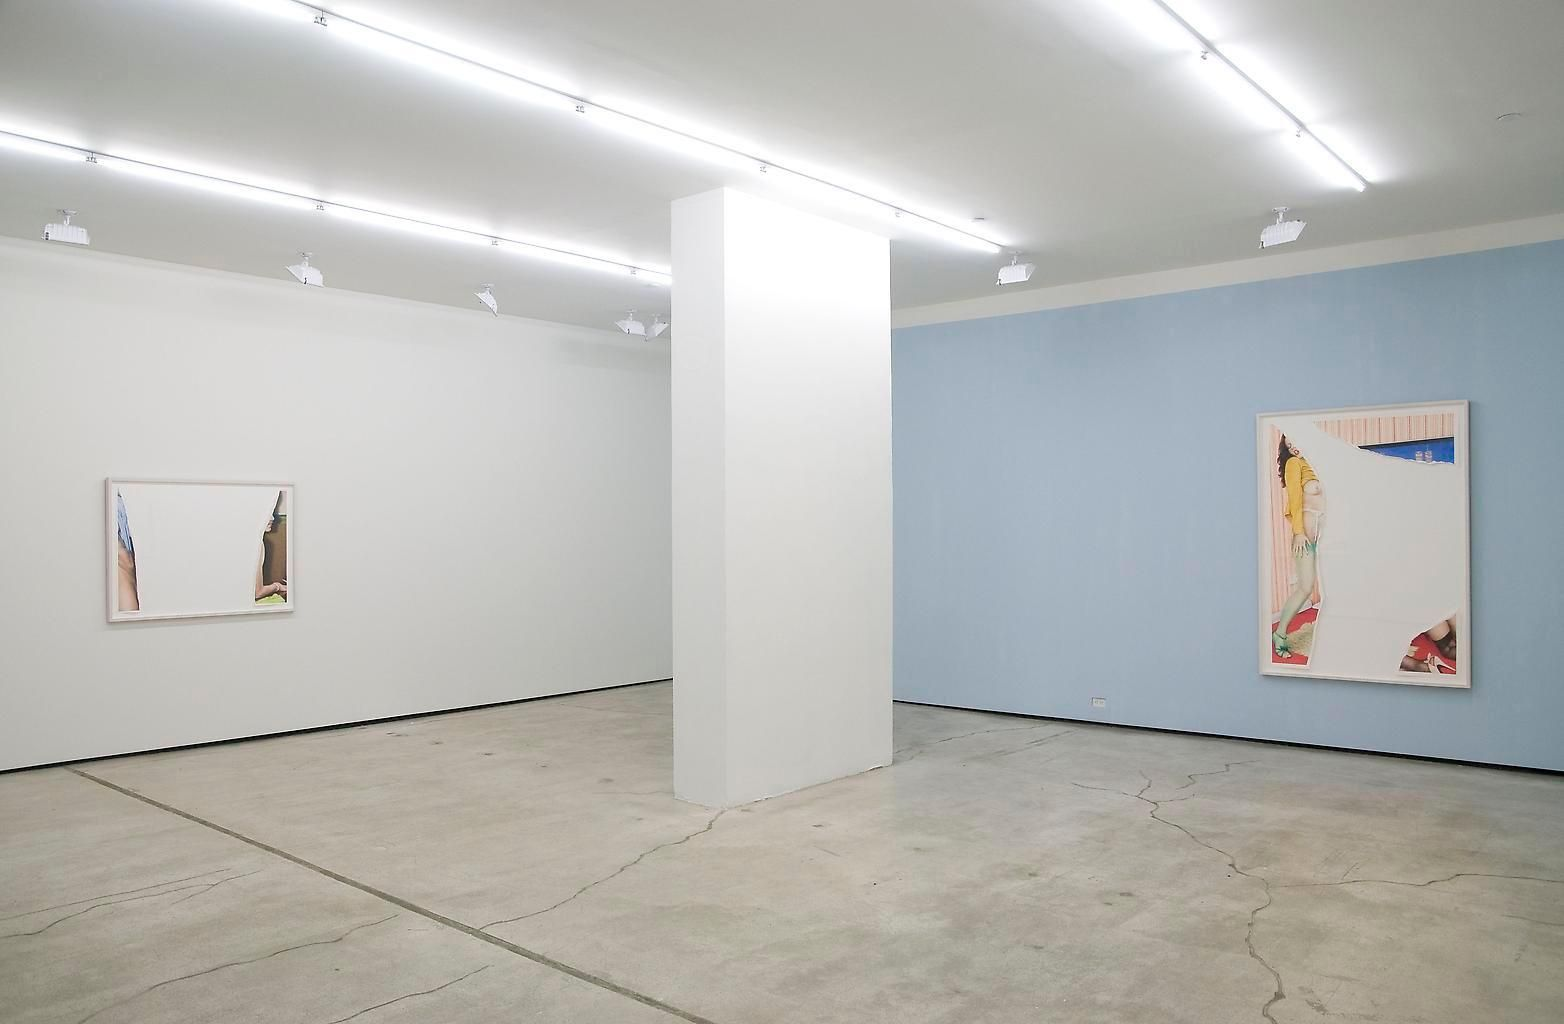 Installation view, Slawomir Elsner, Collecting Images, Marc Jancou, New York, June 7 - July 29, 2011